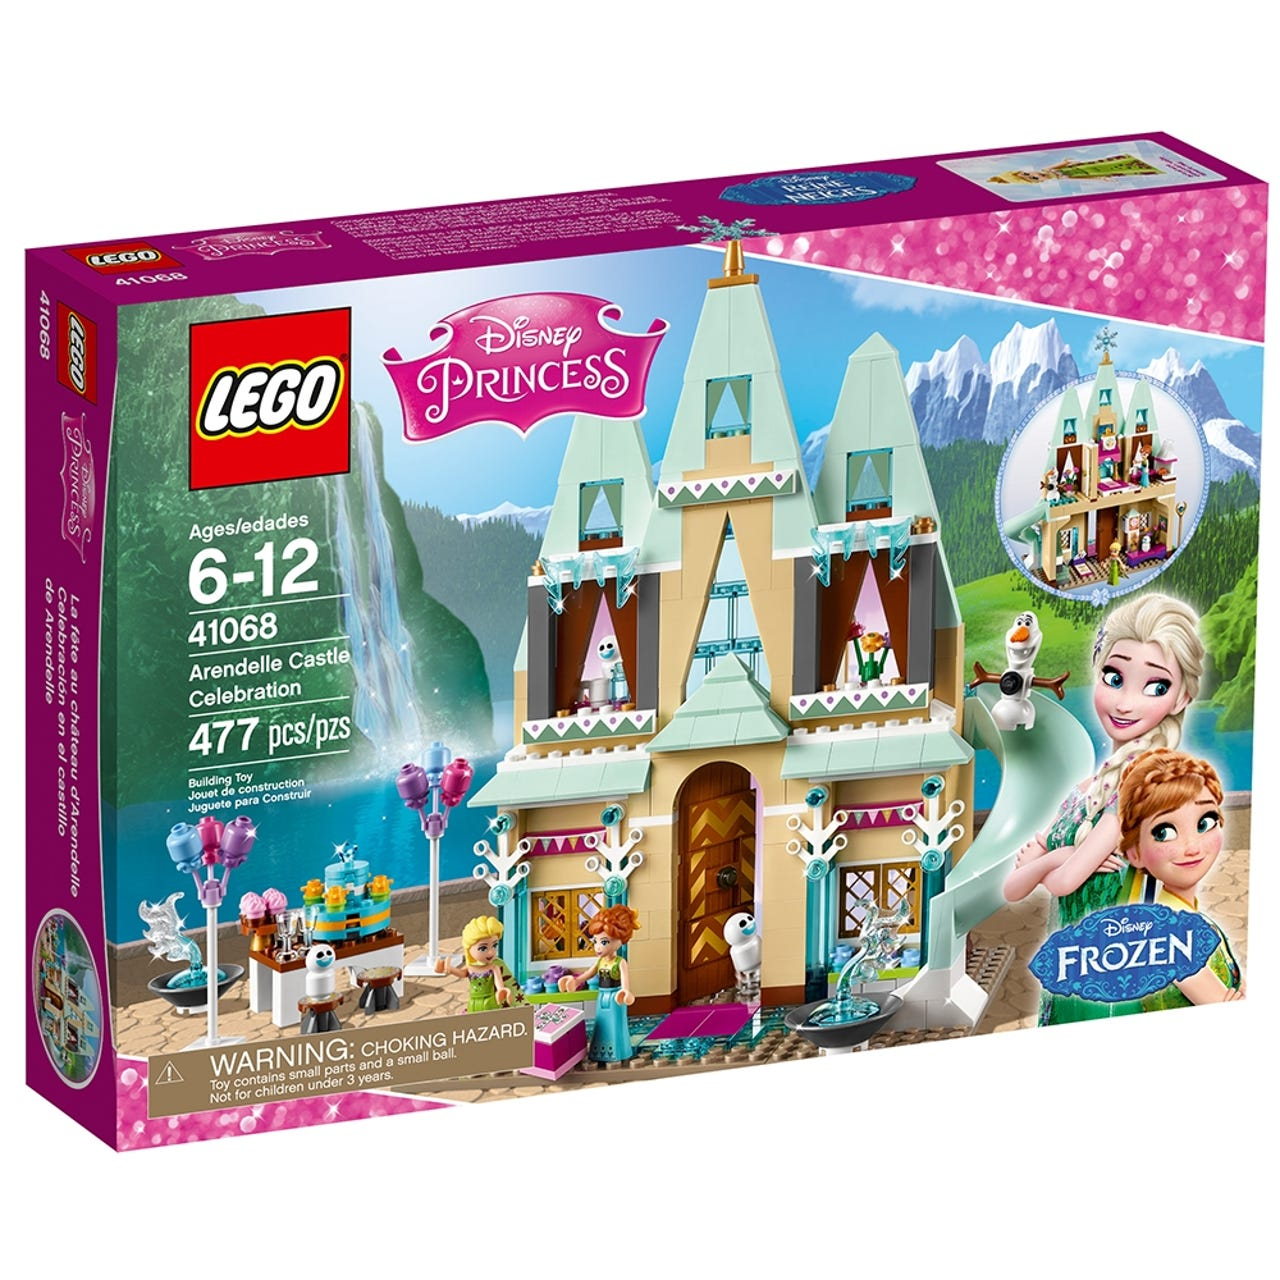 Arendelle Castle Celebration 41068 Disney Buy Online At The Official Lego Shop Us